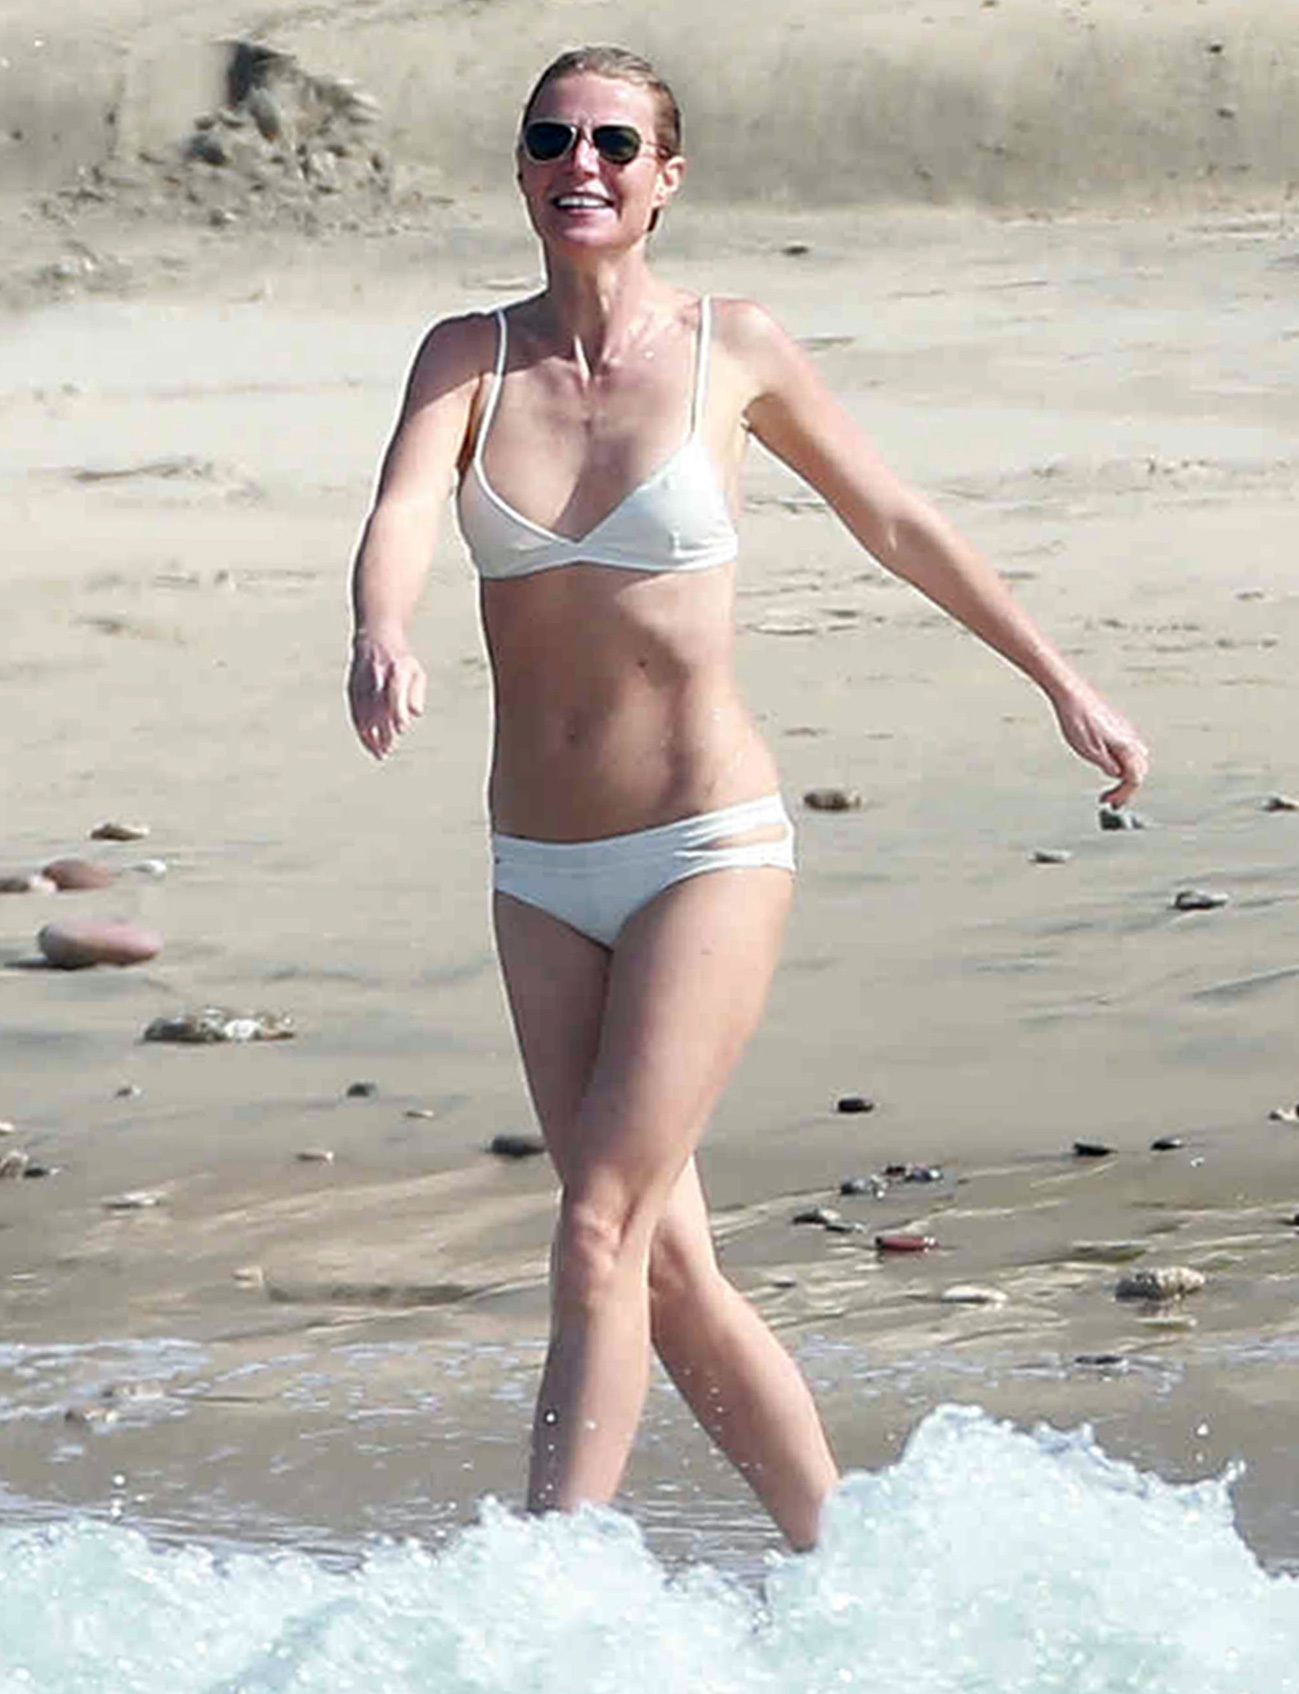 Gwyneth Paltrow Shows Off Her Toned Figure in a White Hot Bikini in Mexico